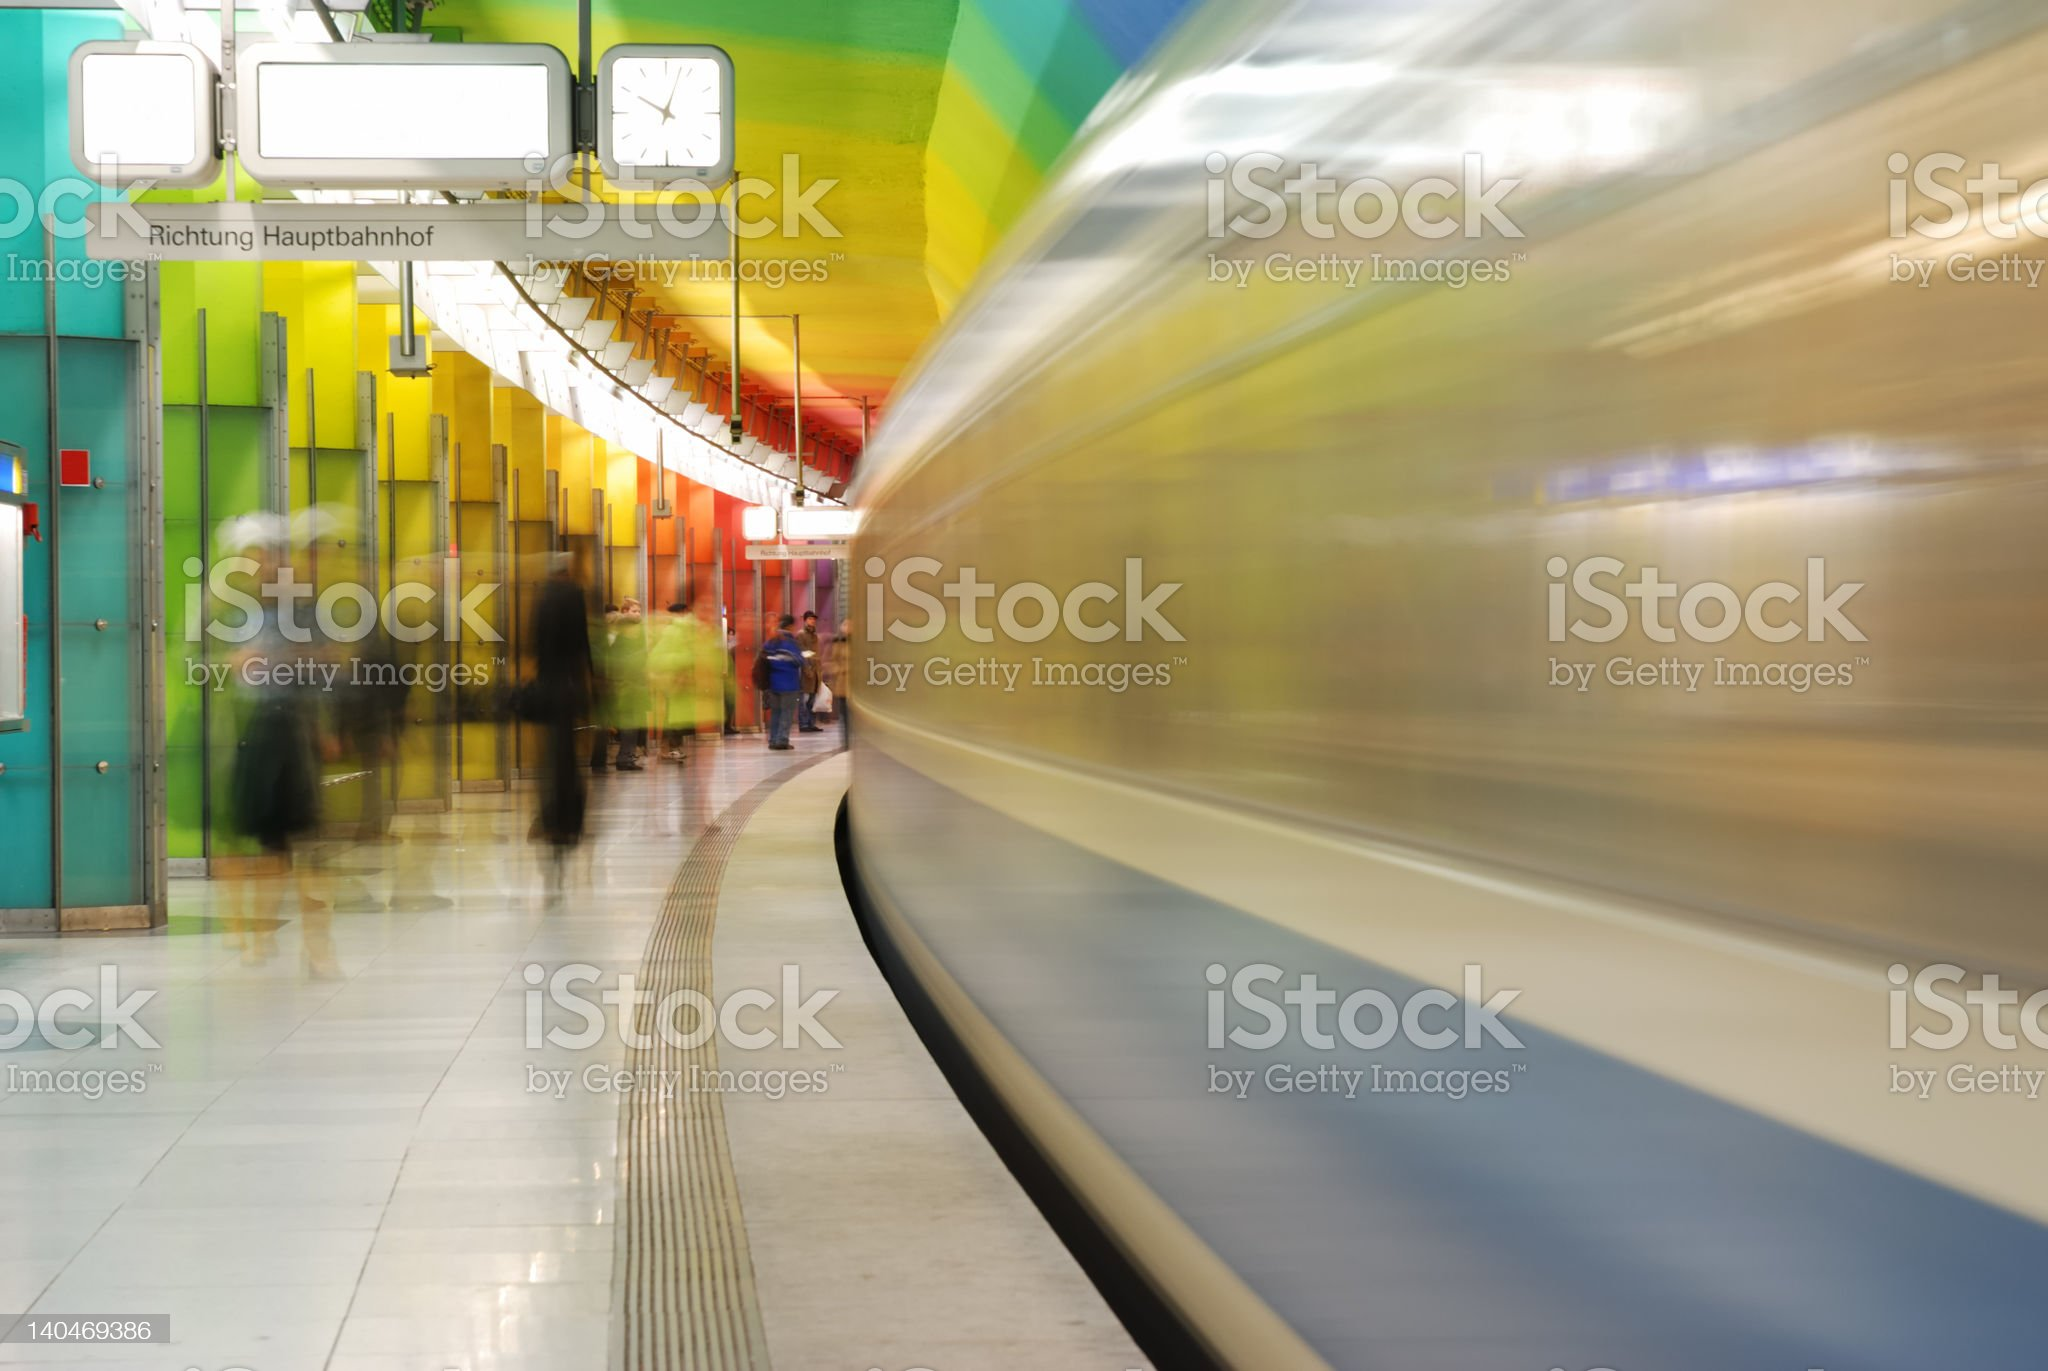 train in motion at colorful subway station royalty-free stock photo